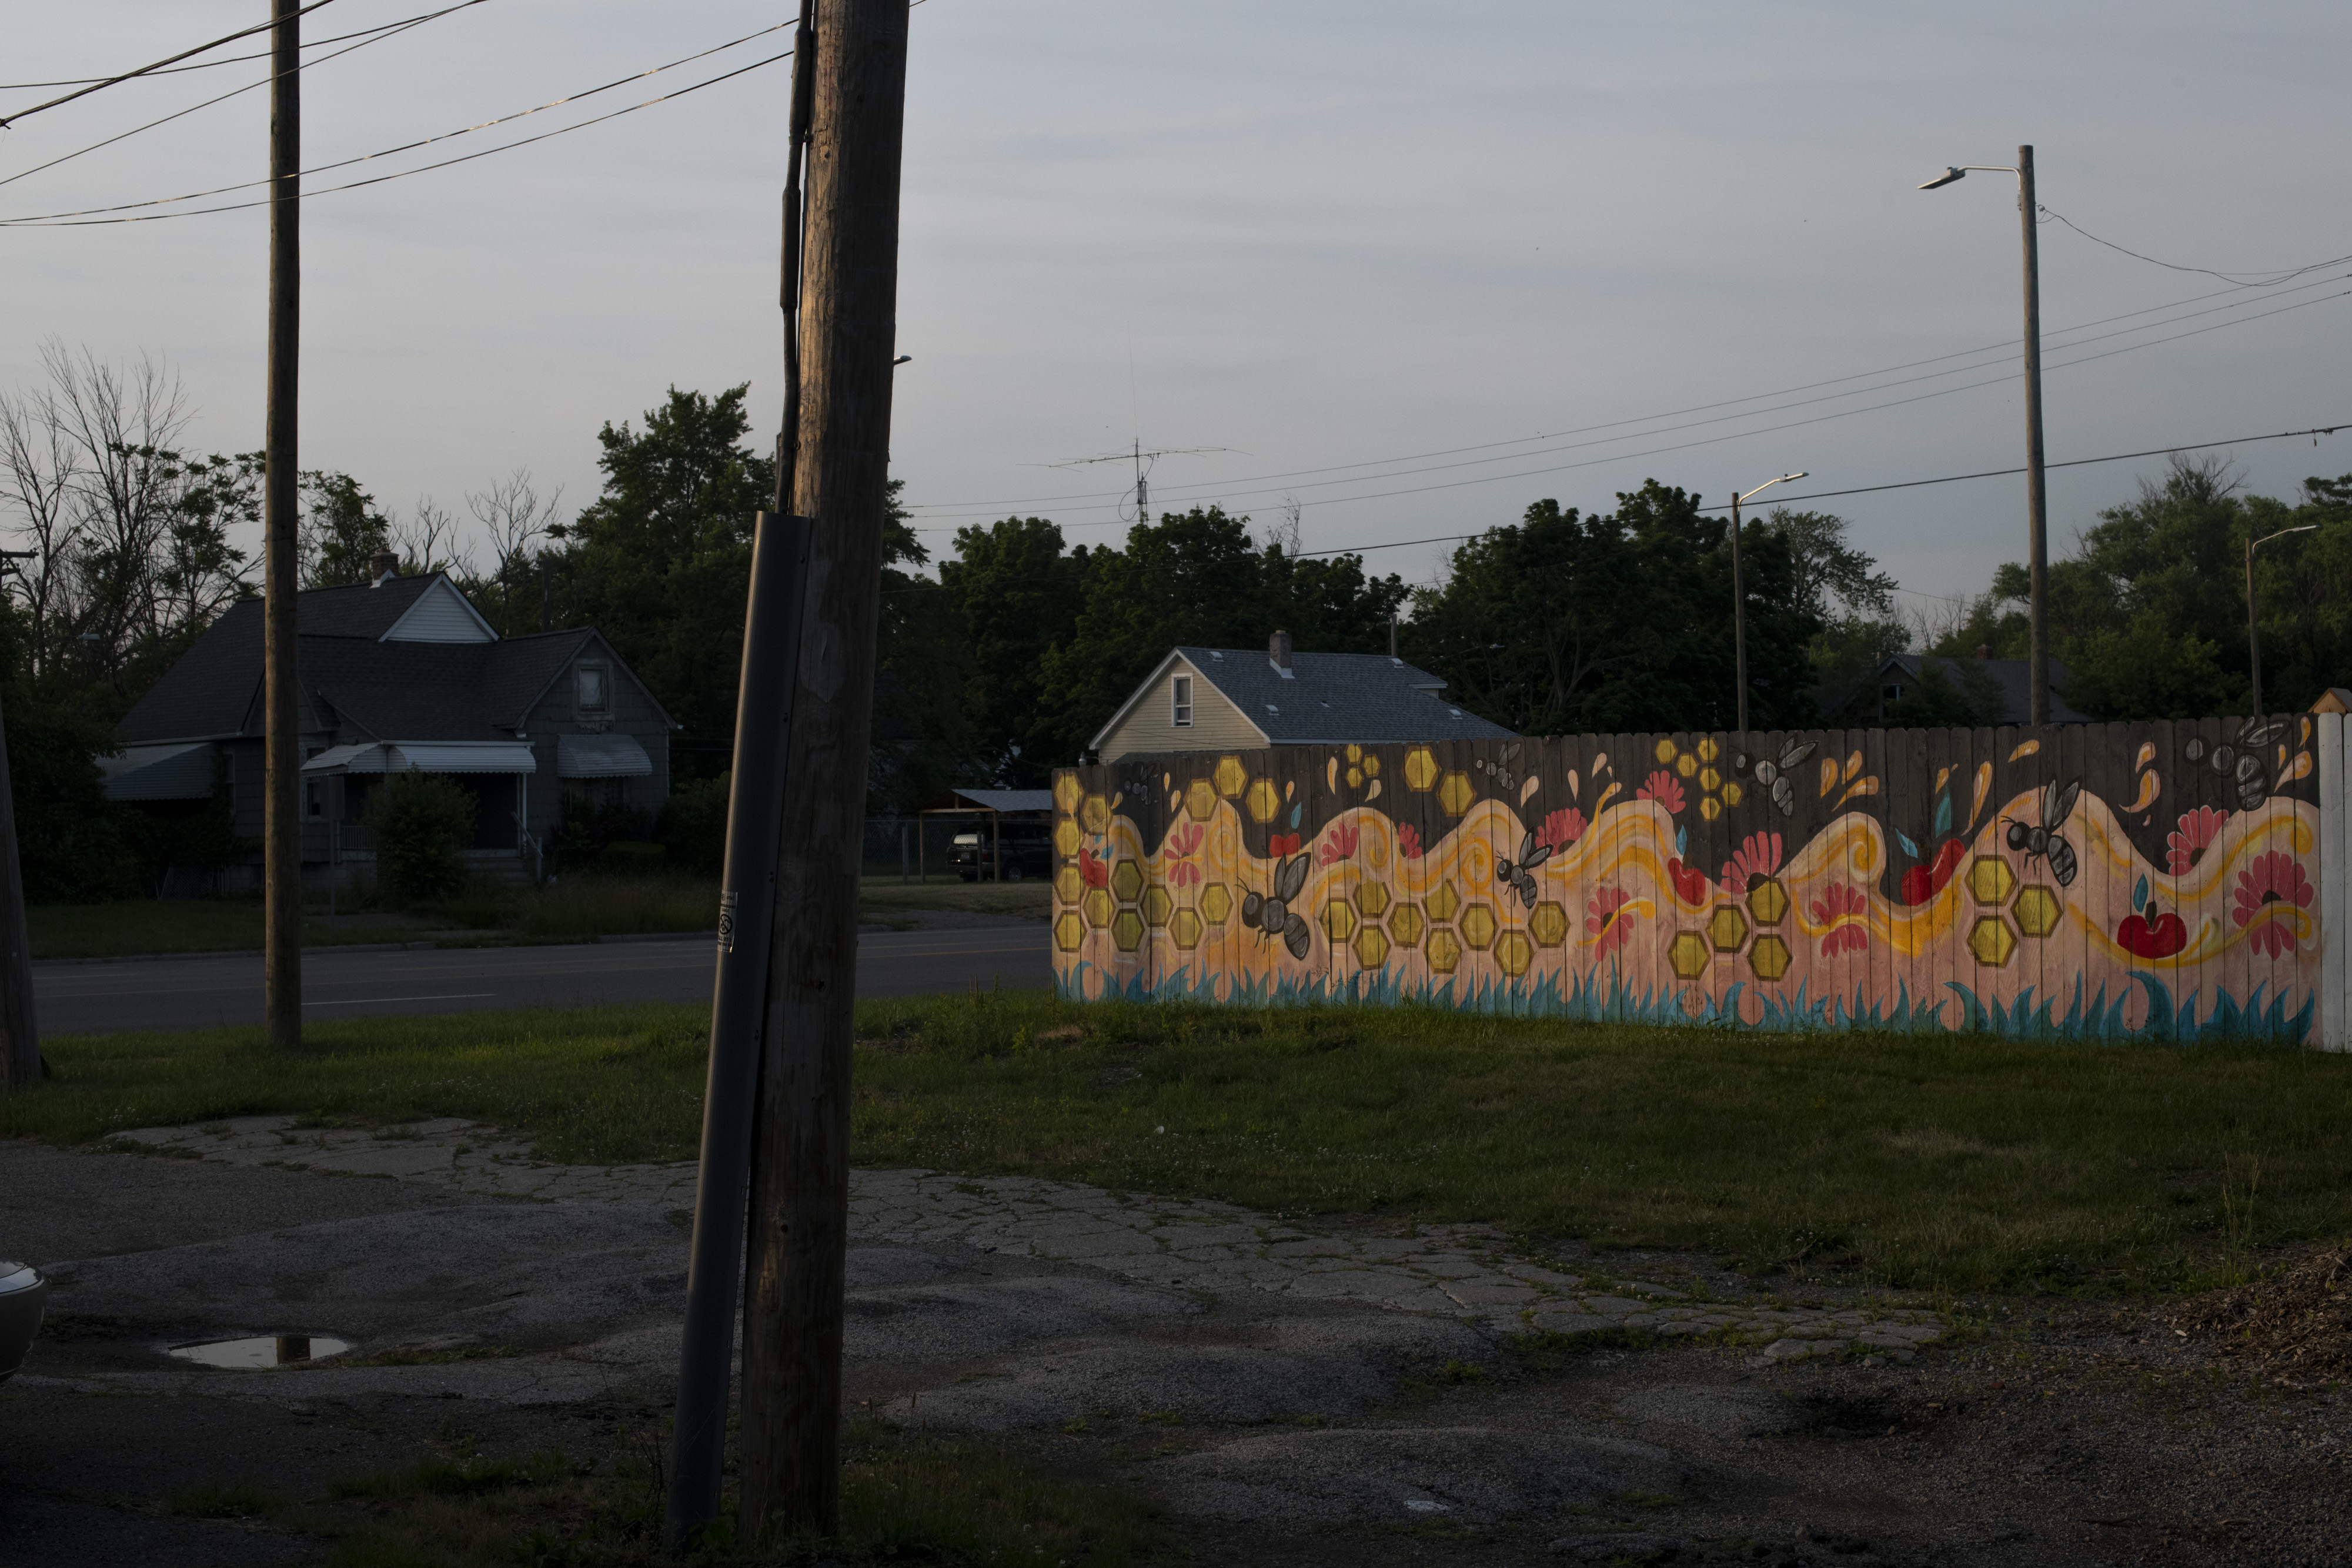 A mural outside the farm.